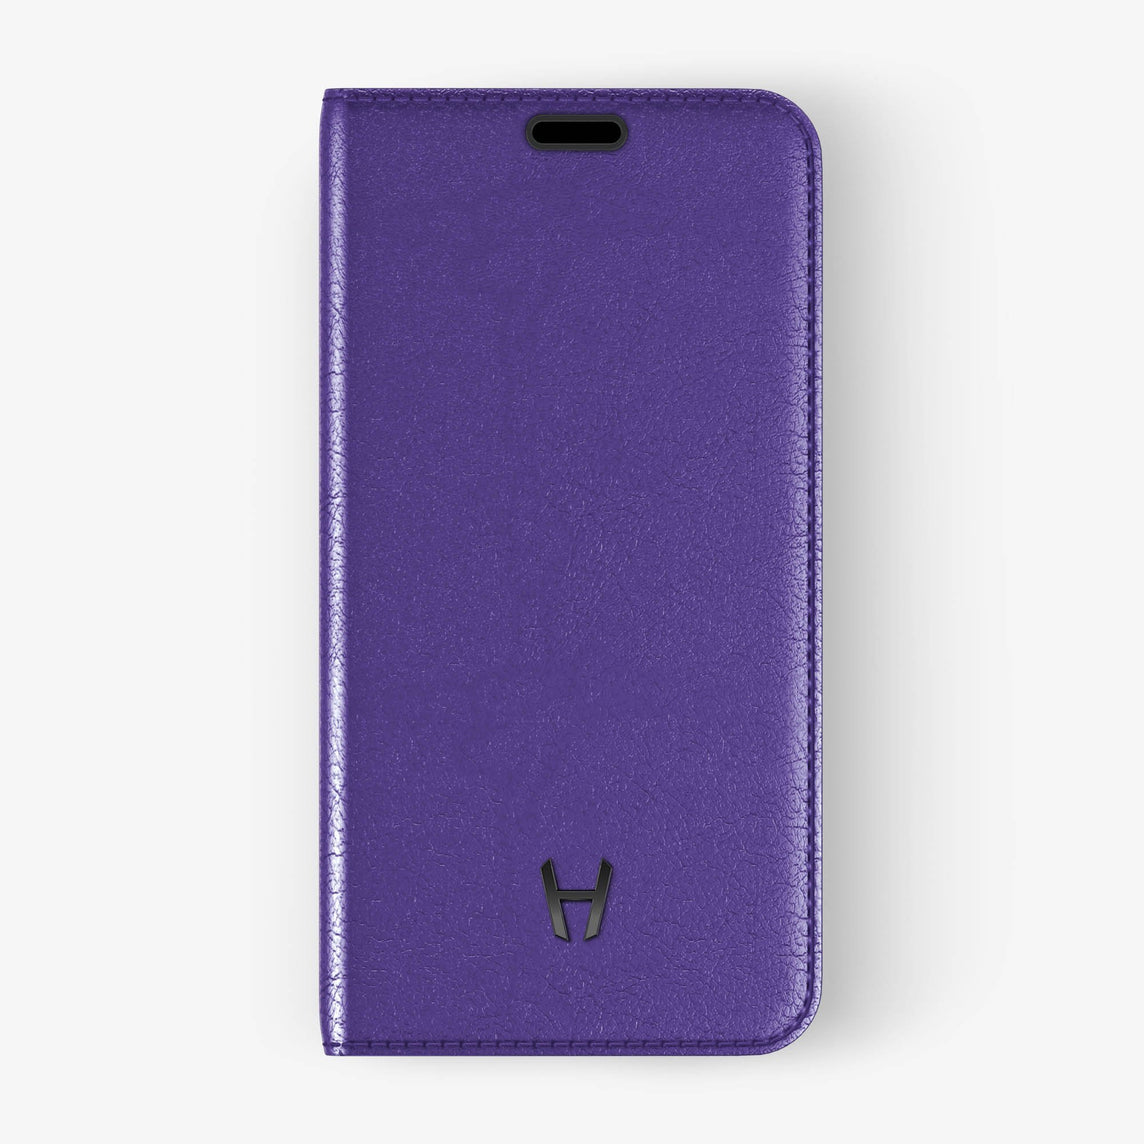 Violet Calfskin iPhone Folio Case for iPhone X finishing black - Hadoro Luxury Cases img1